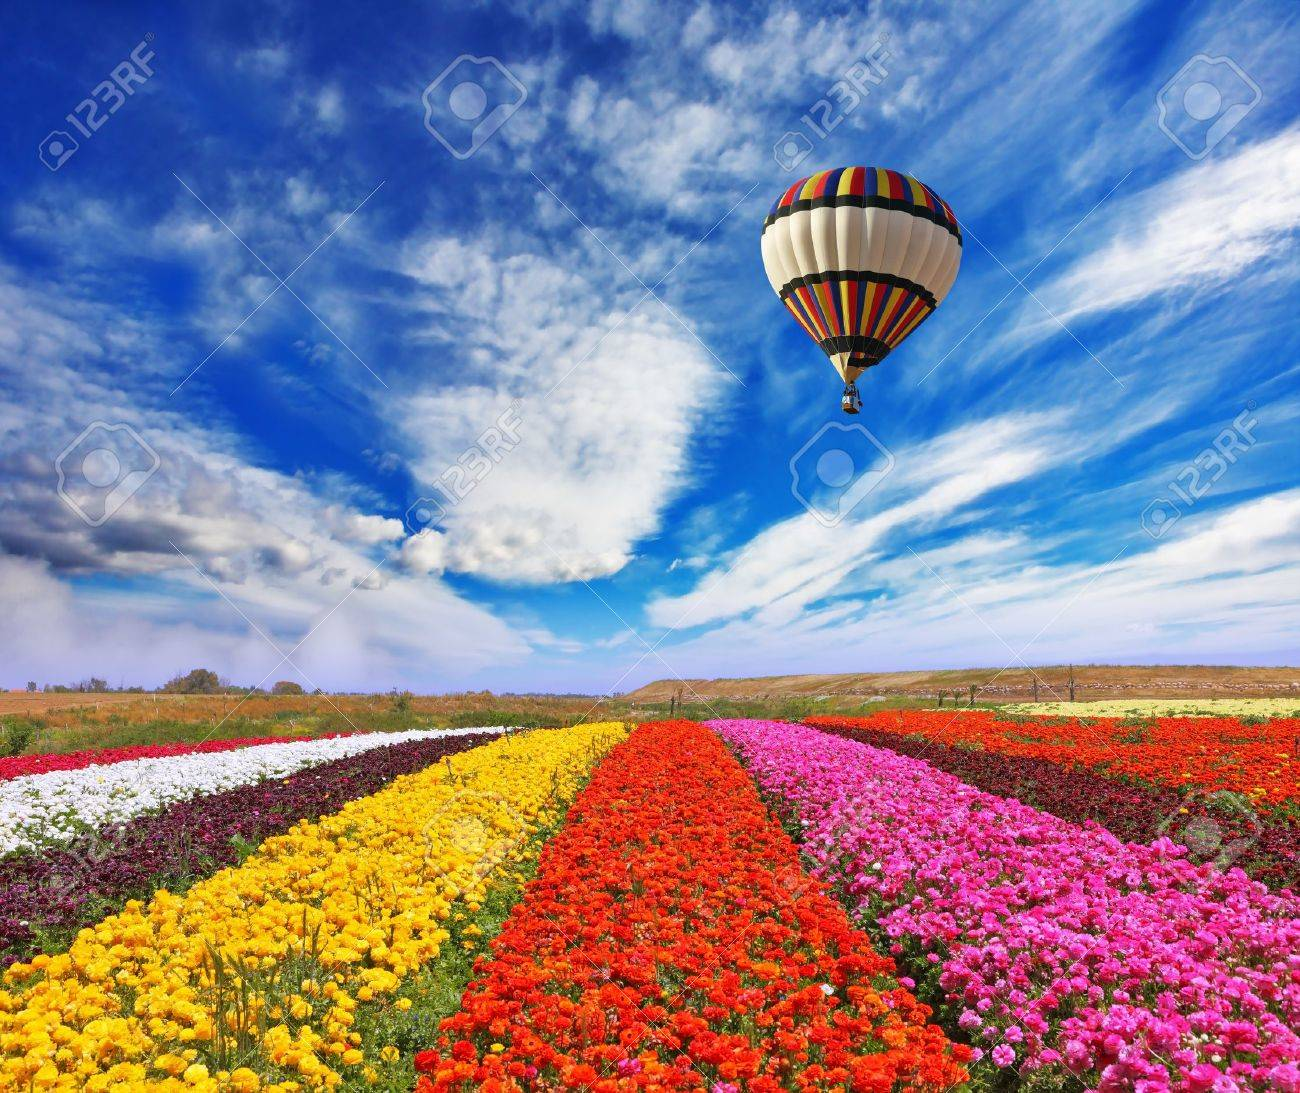 Elegant multi-color rural fields with flowers Over field the huge air balloon flies - 21654585